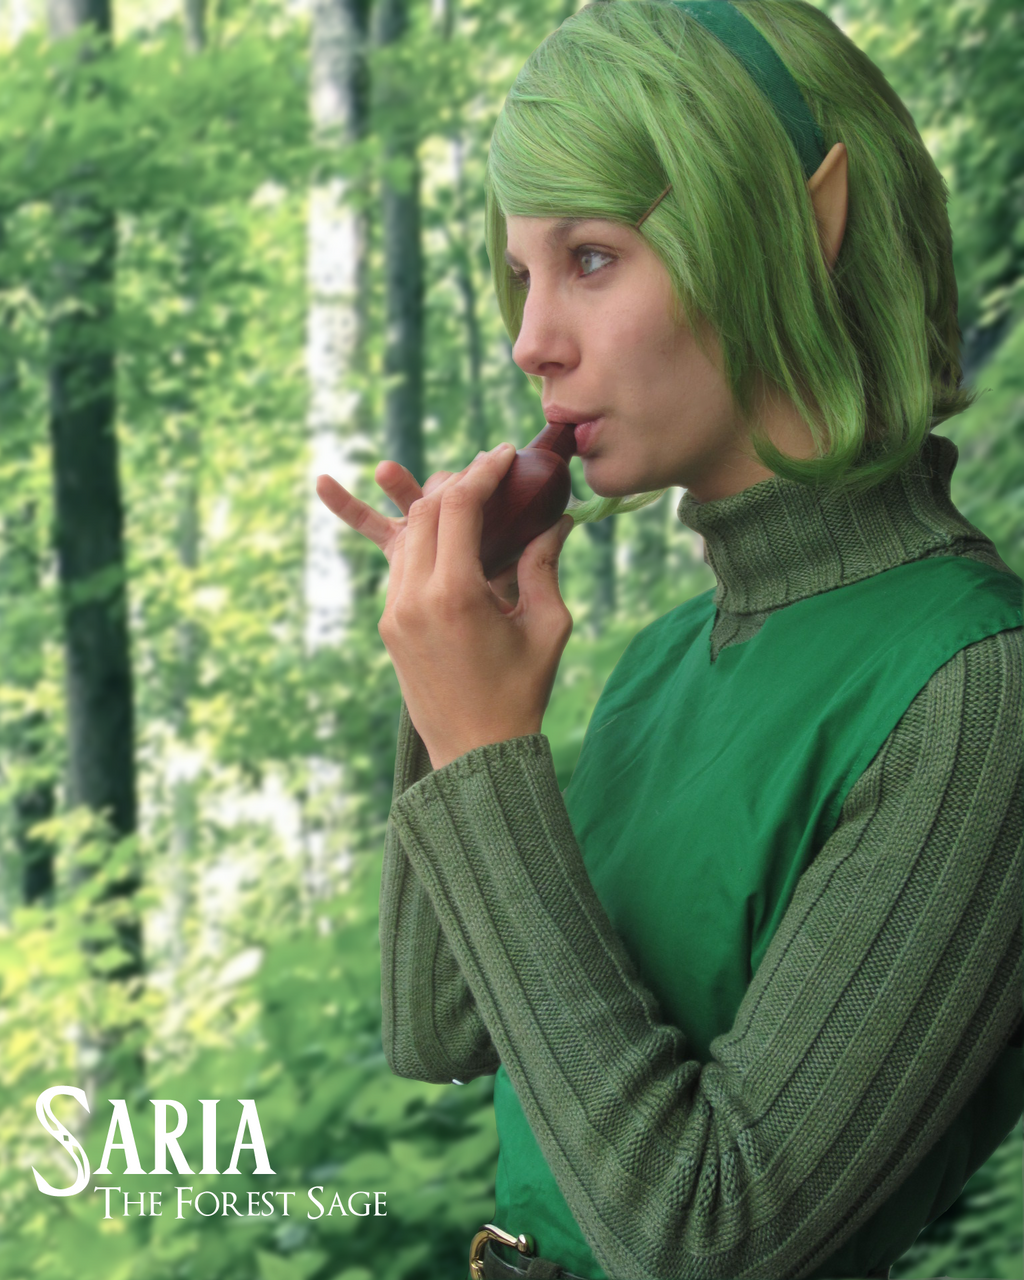 Avatar 2 Underwater Trailer: Saria Cosplay By Goldencloud On DeviantArt